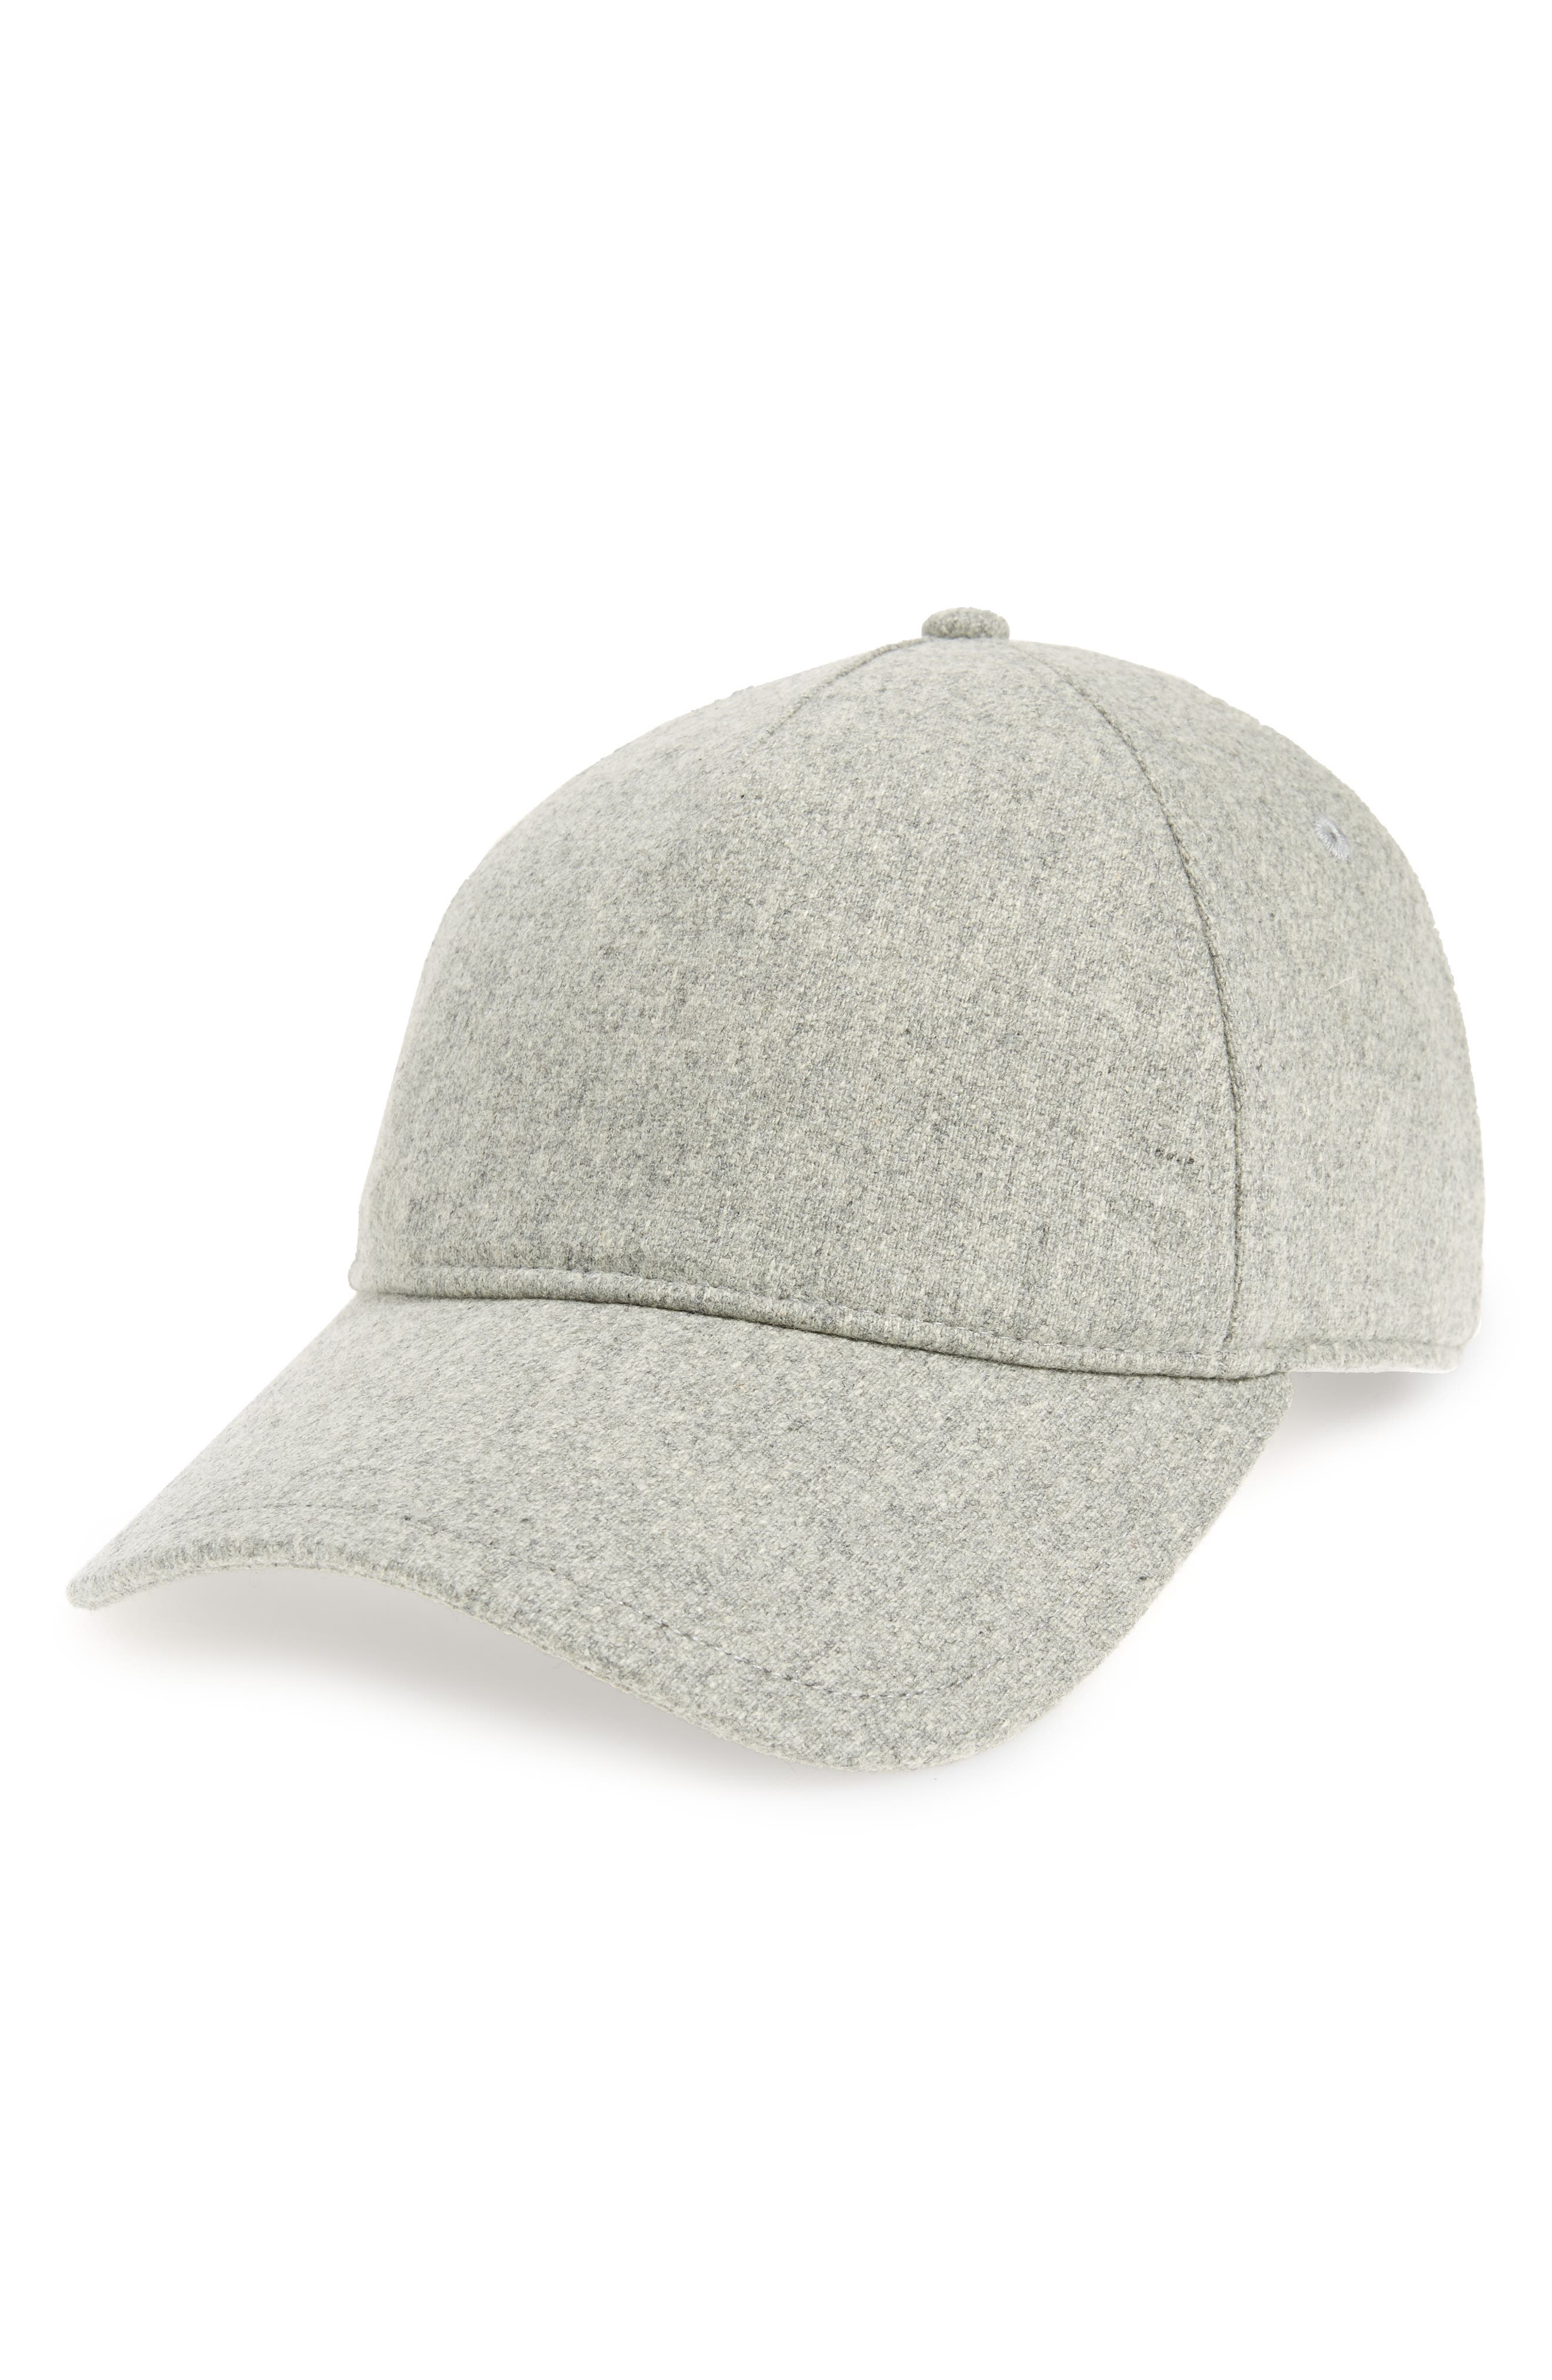 Marilyn Baseball Cap,                             Main thumbnail 1, color,                             LIGHT HEATHER GREY